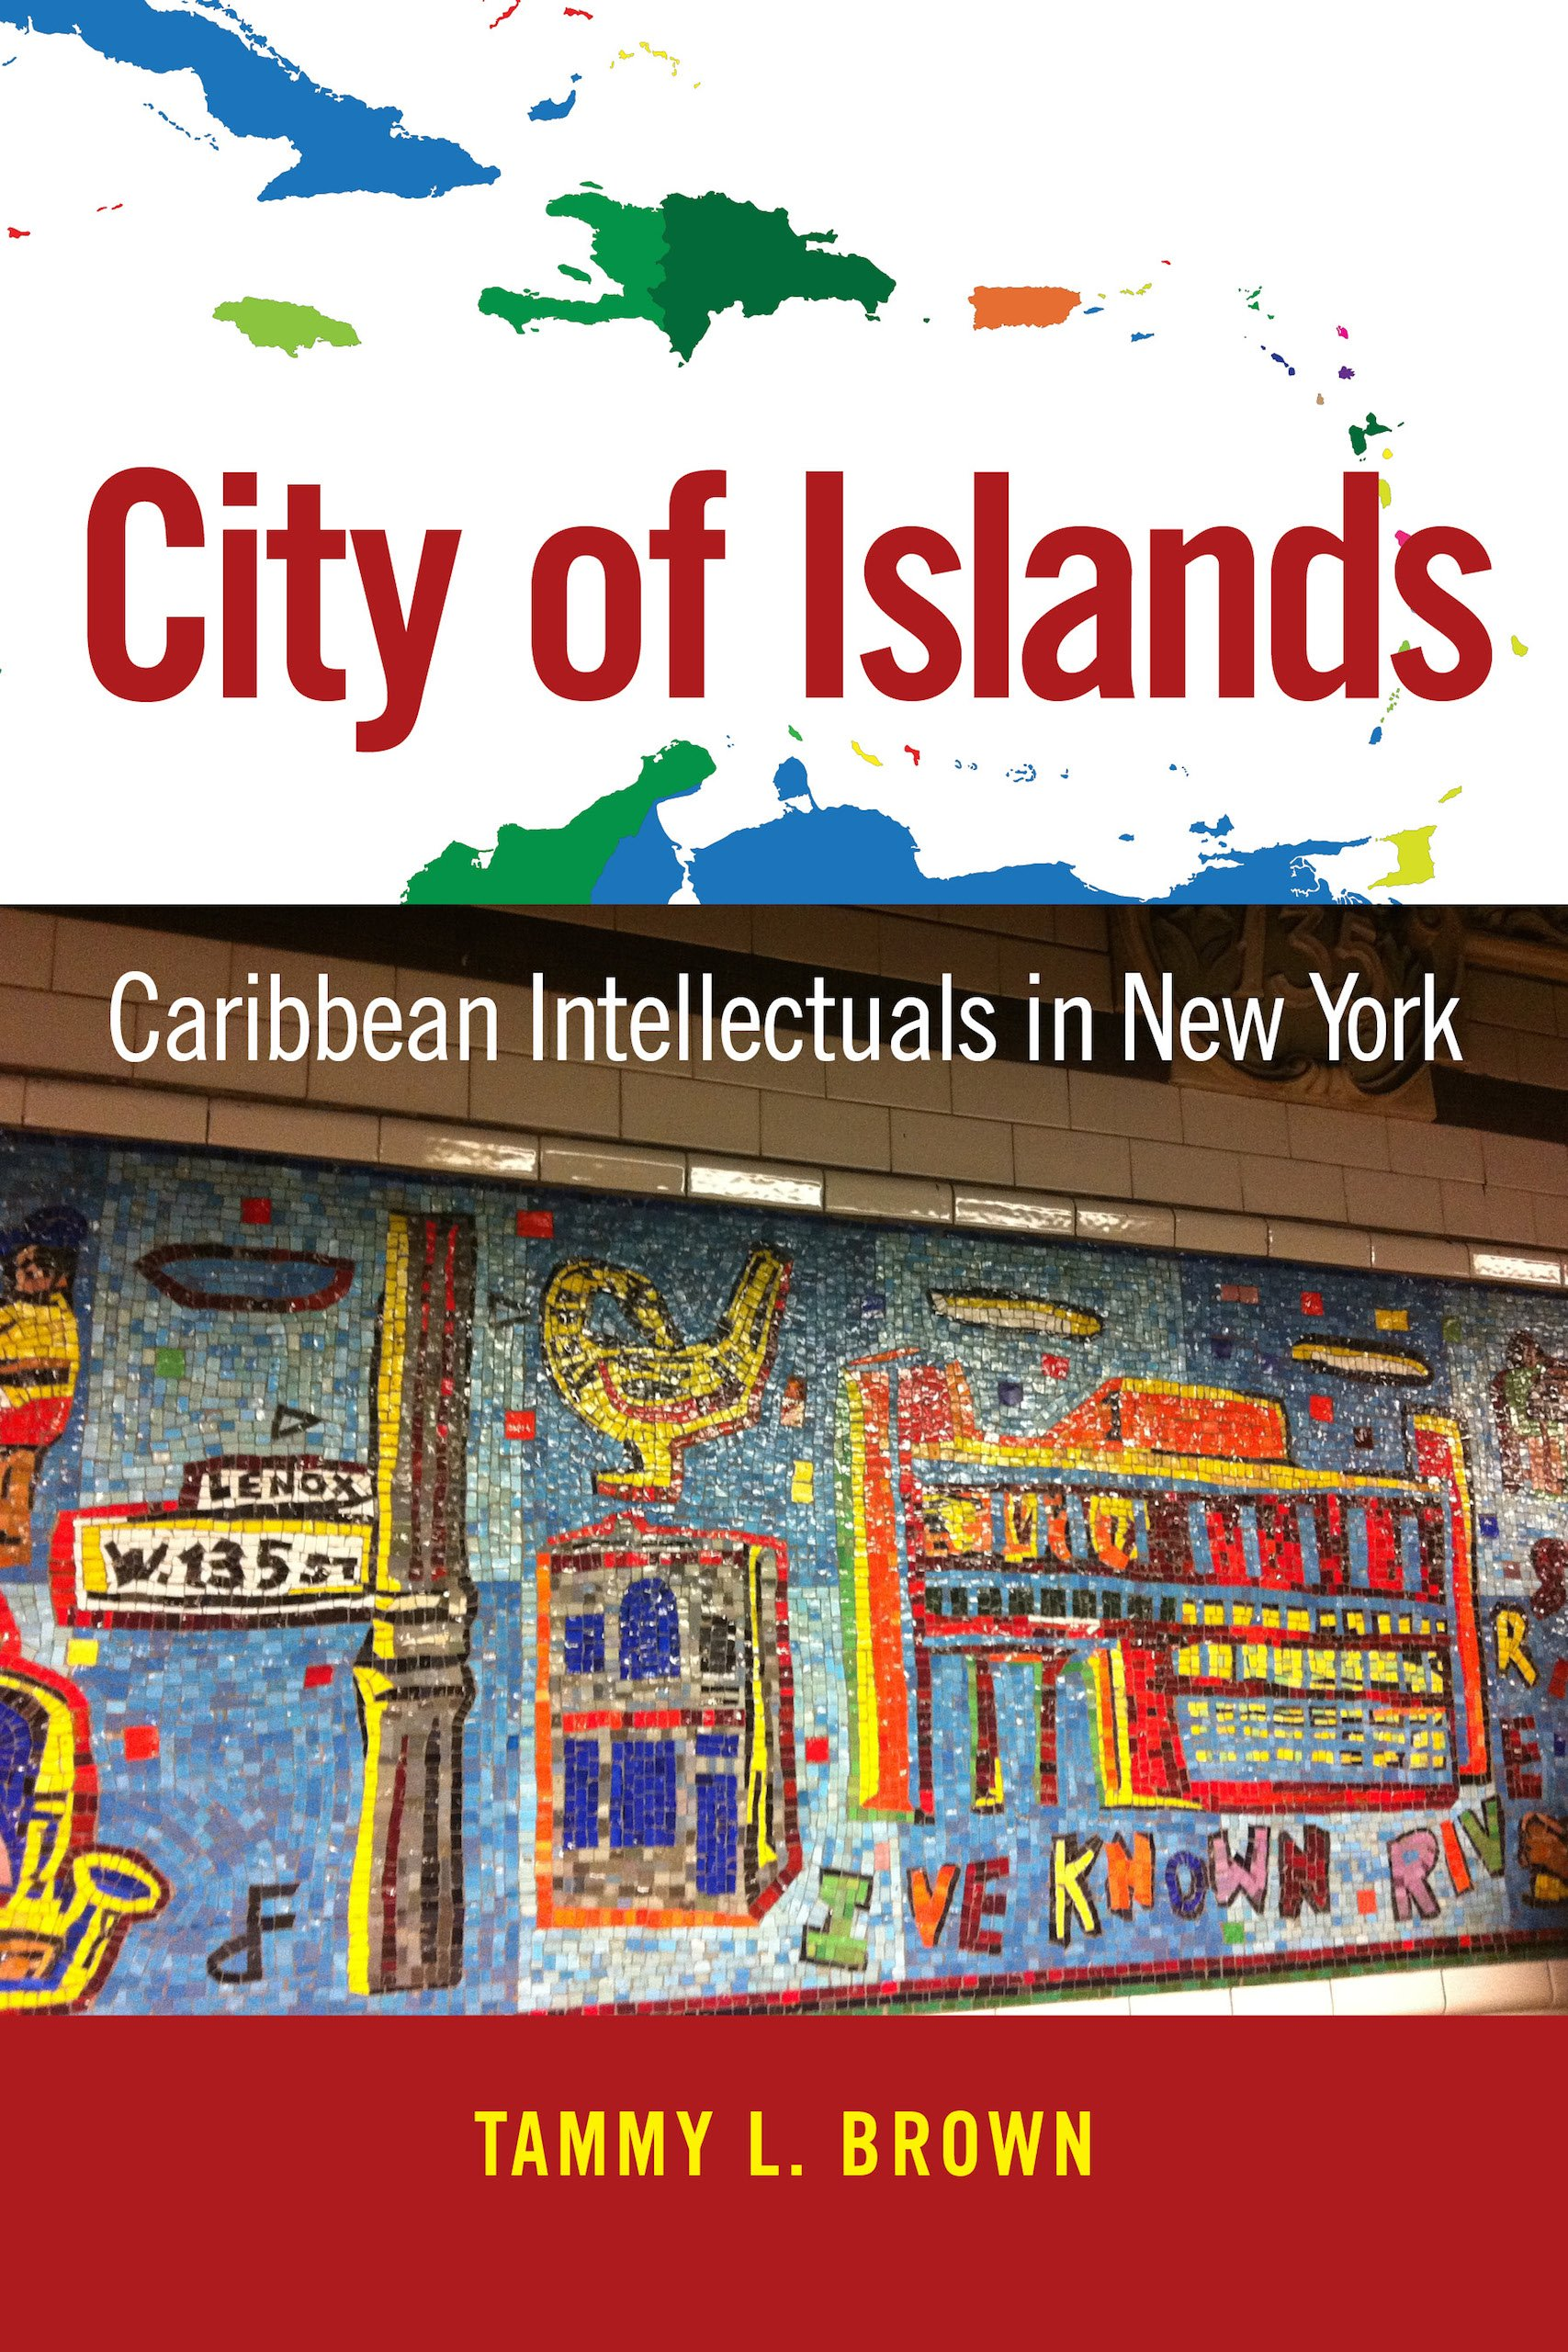 City of islands caribbean intellectuals in new york caribbean city of islands caribbean intellectuals in new york caribbean studies series tammy l brown 9781628462265 amazon books fandeluxe Choice Image